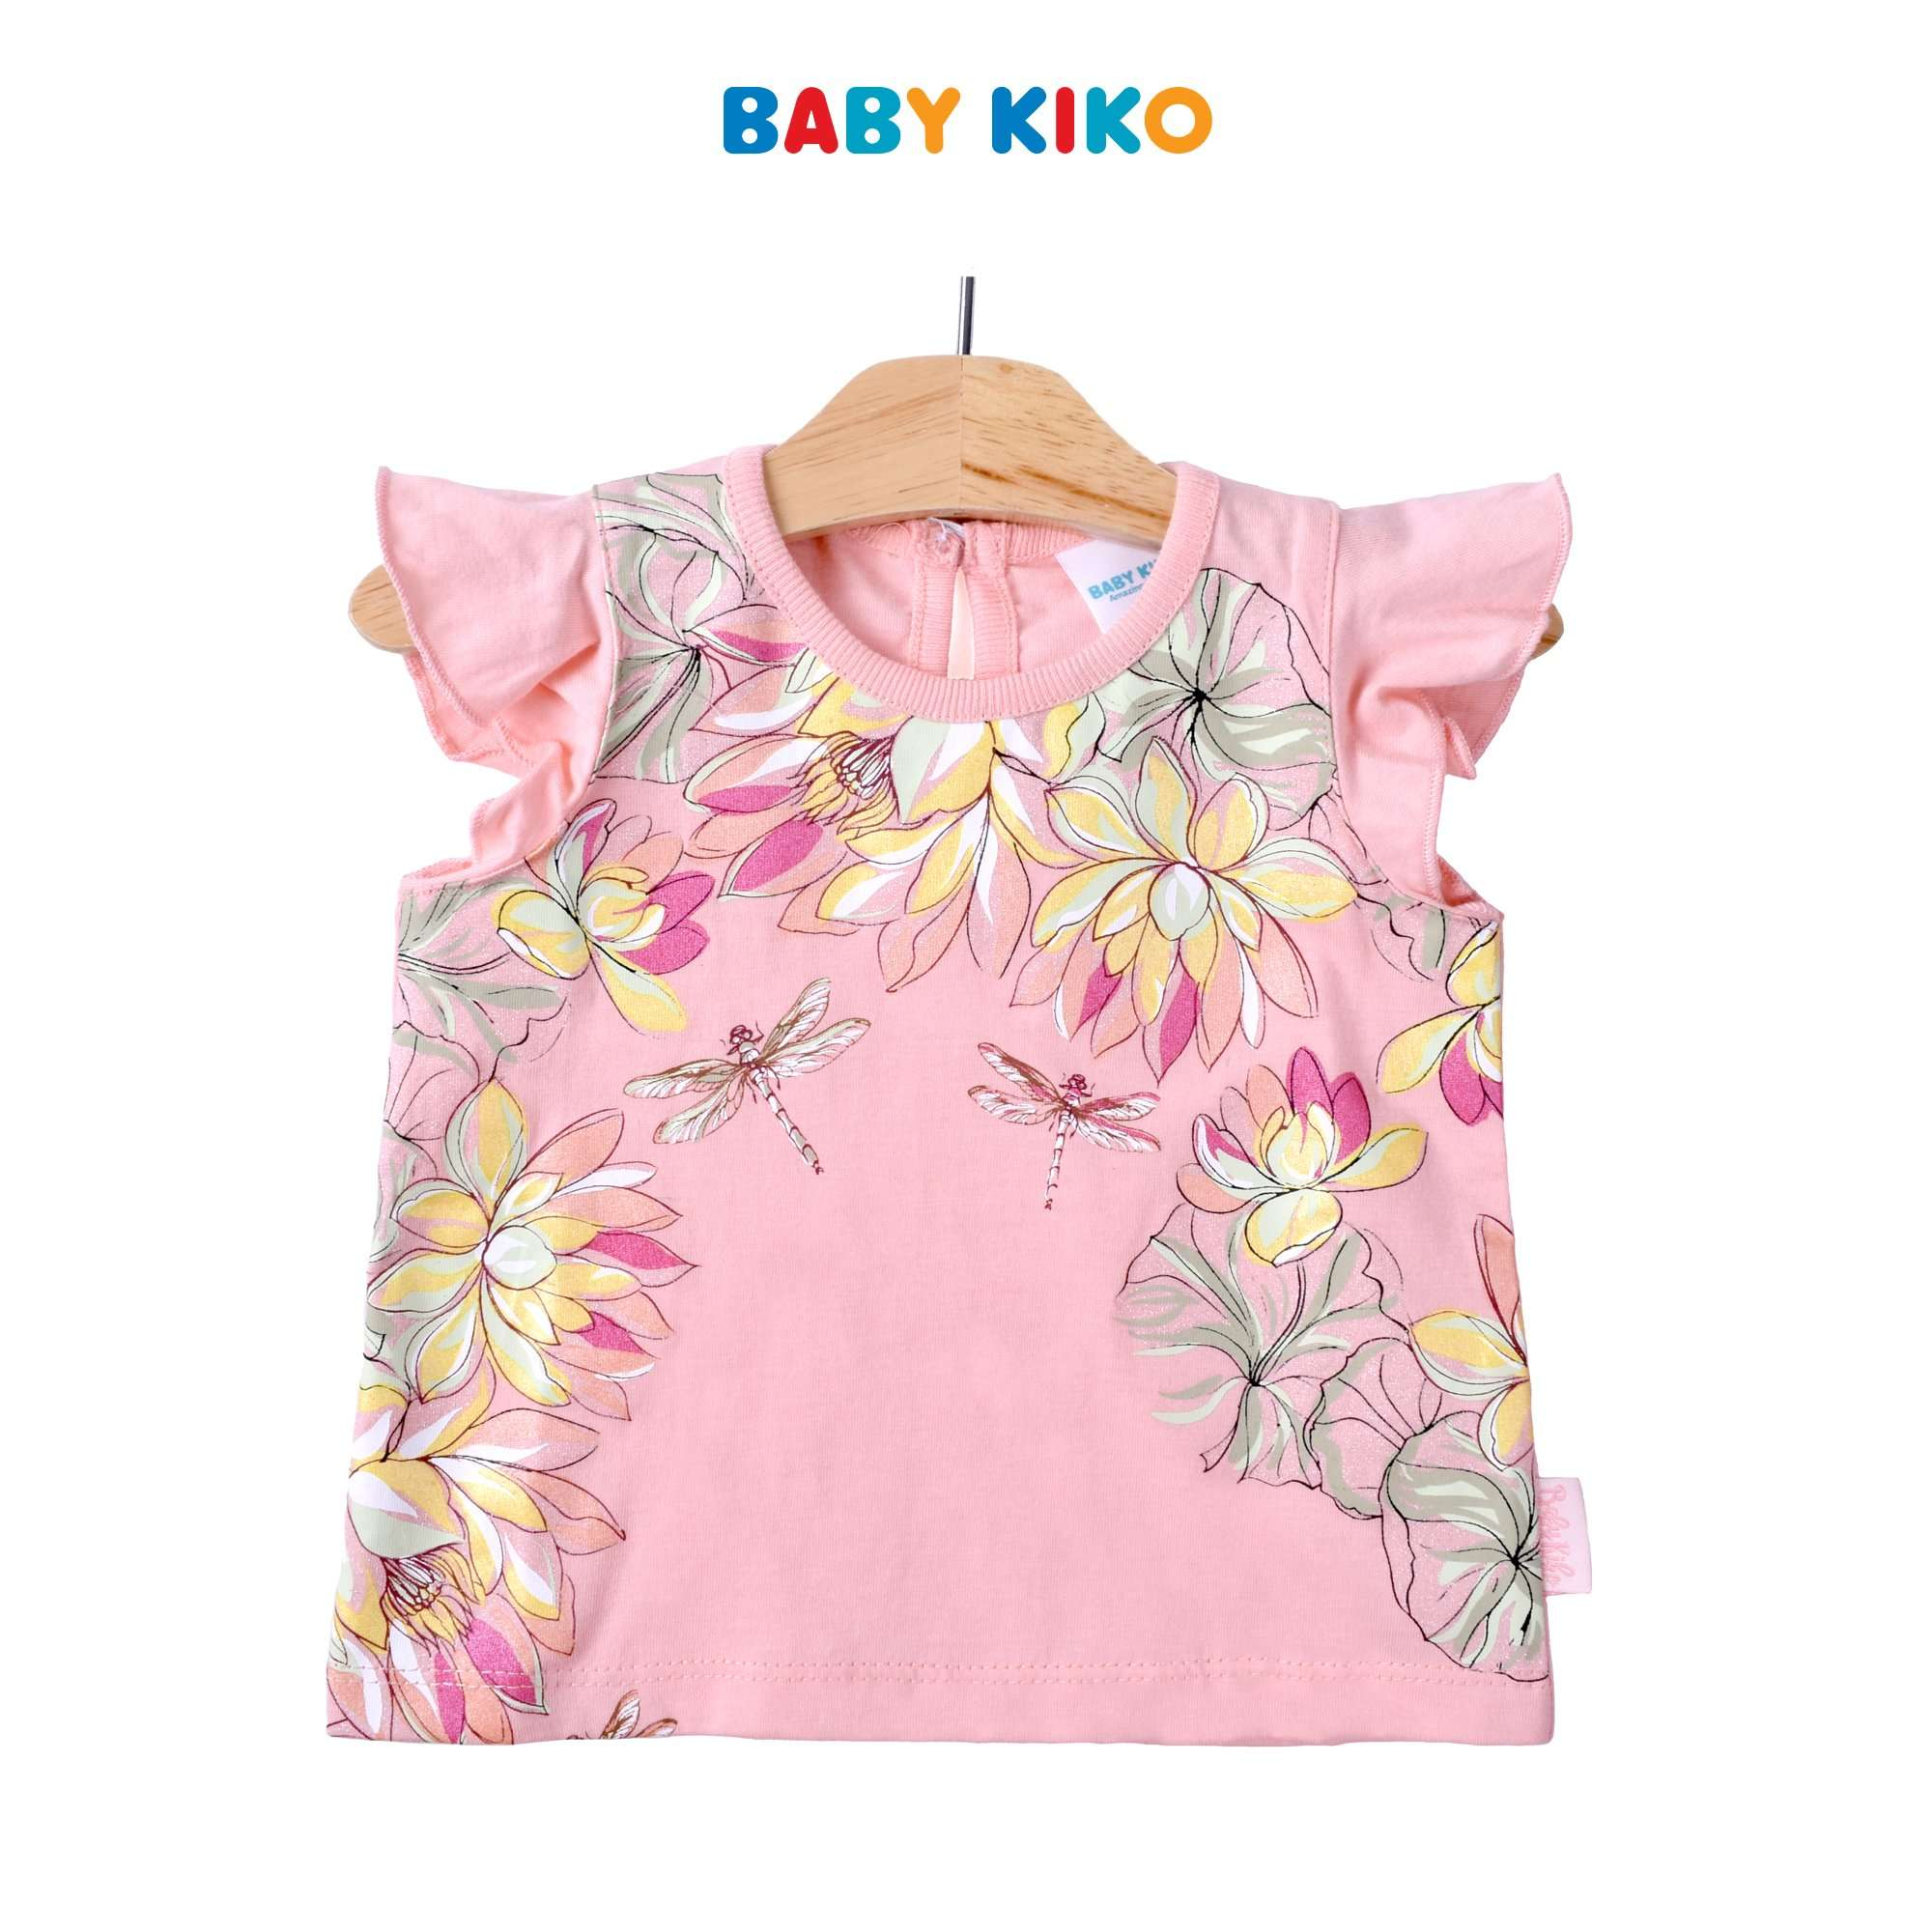 Baby KIKO Baby Girl Sleeveless Tee- Pink 330142-111 : Buy Baby KIKO online at CMG.MY